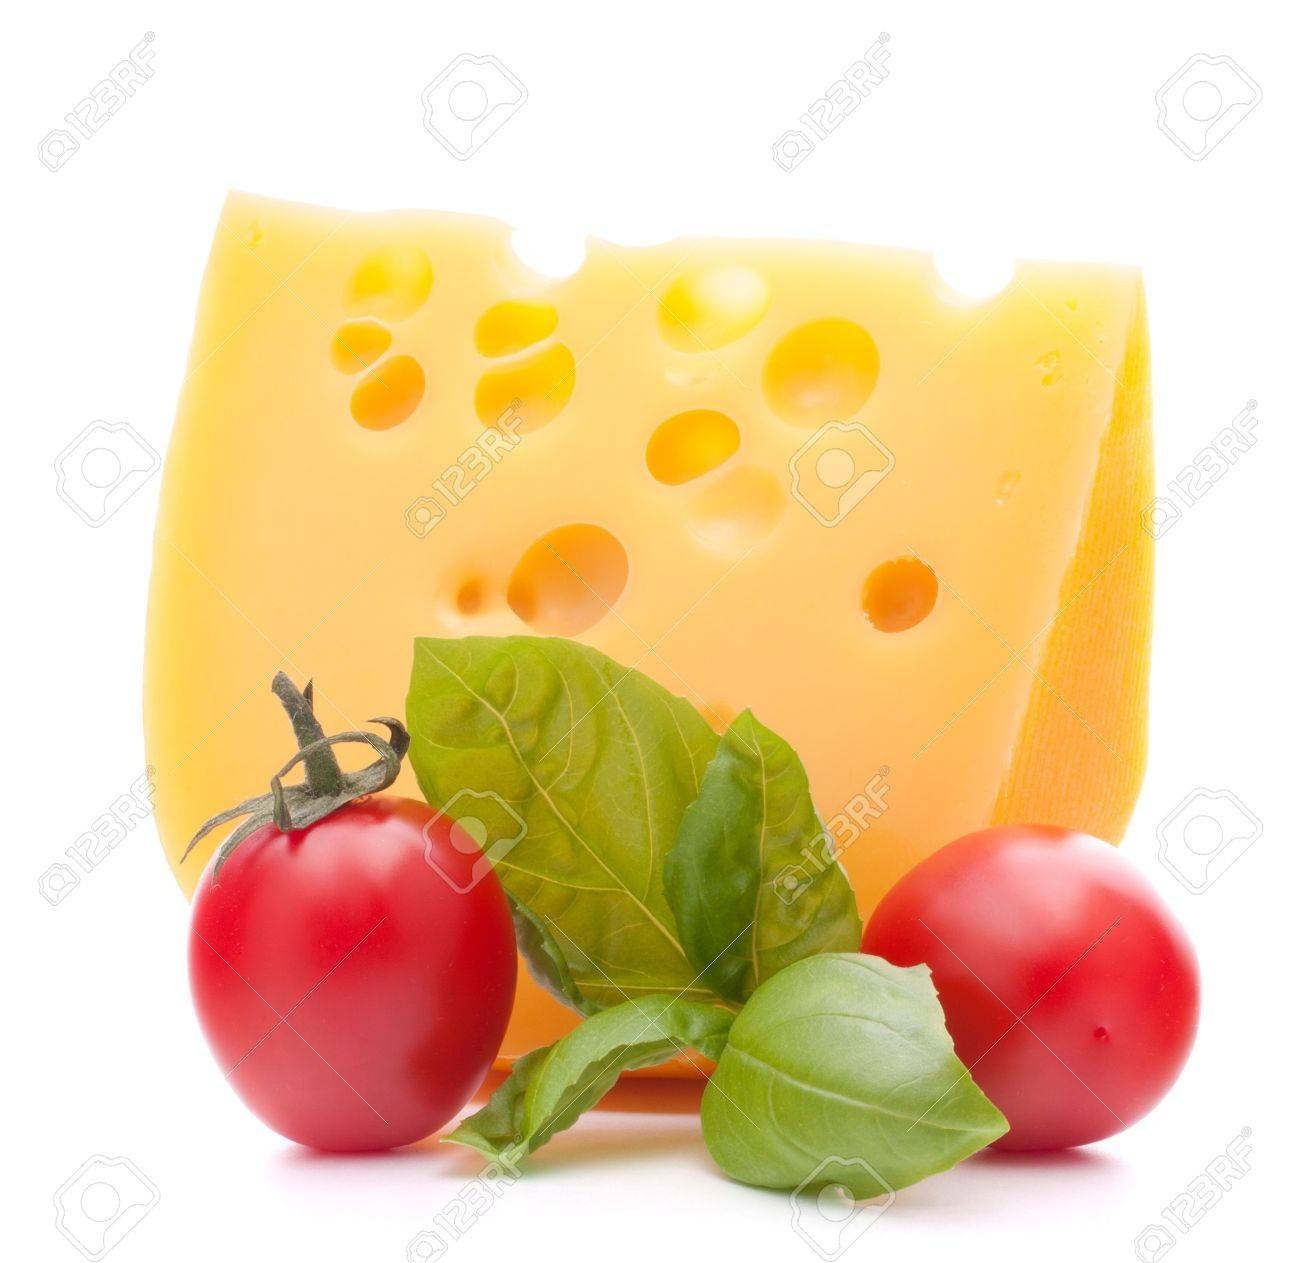 Cheese and basil leaves still life  isolated on white background cutout Stock Photo - 15093419